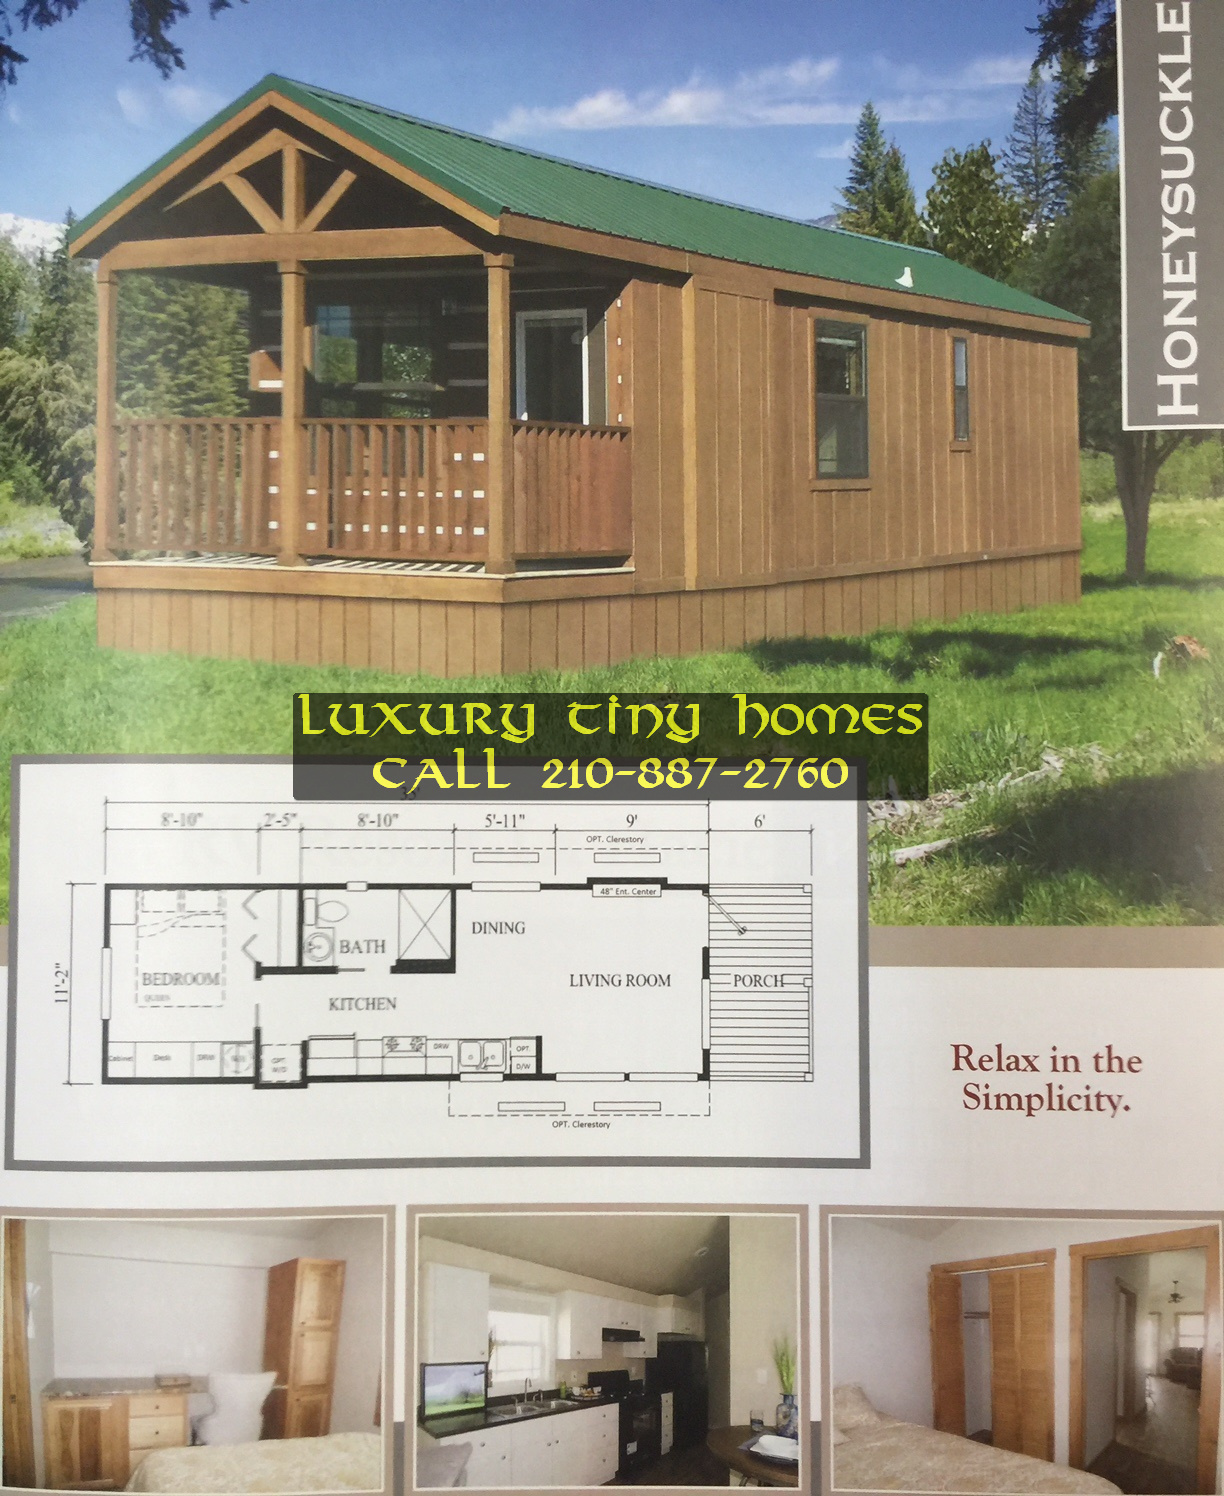 honeysuckle-cabin-tiny-homes-call-2108872760